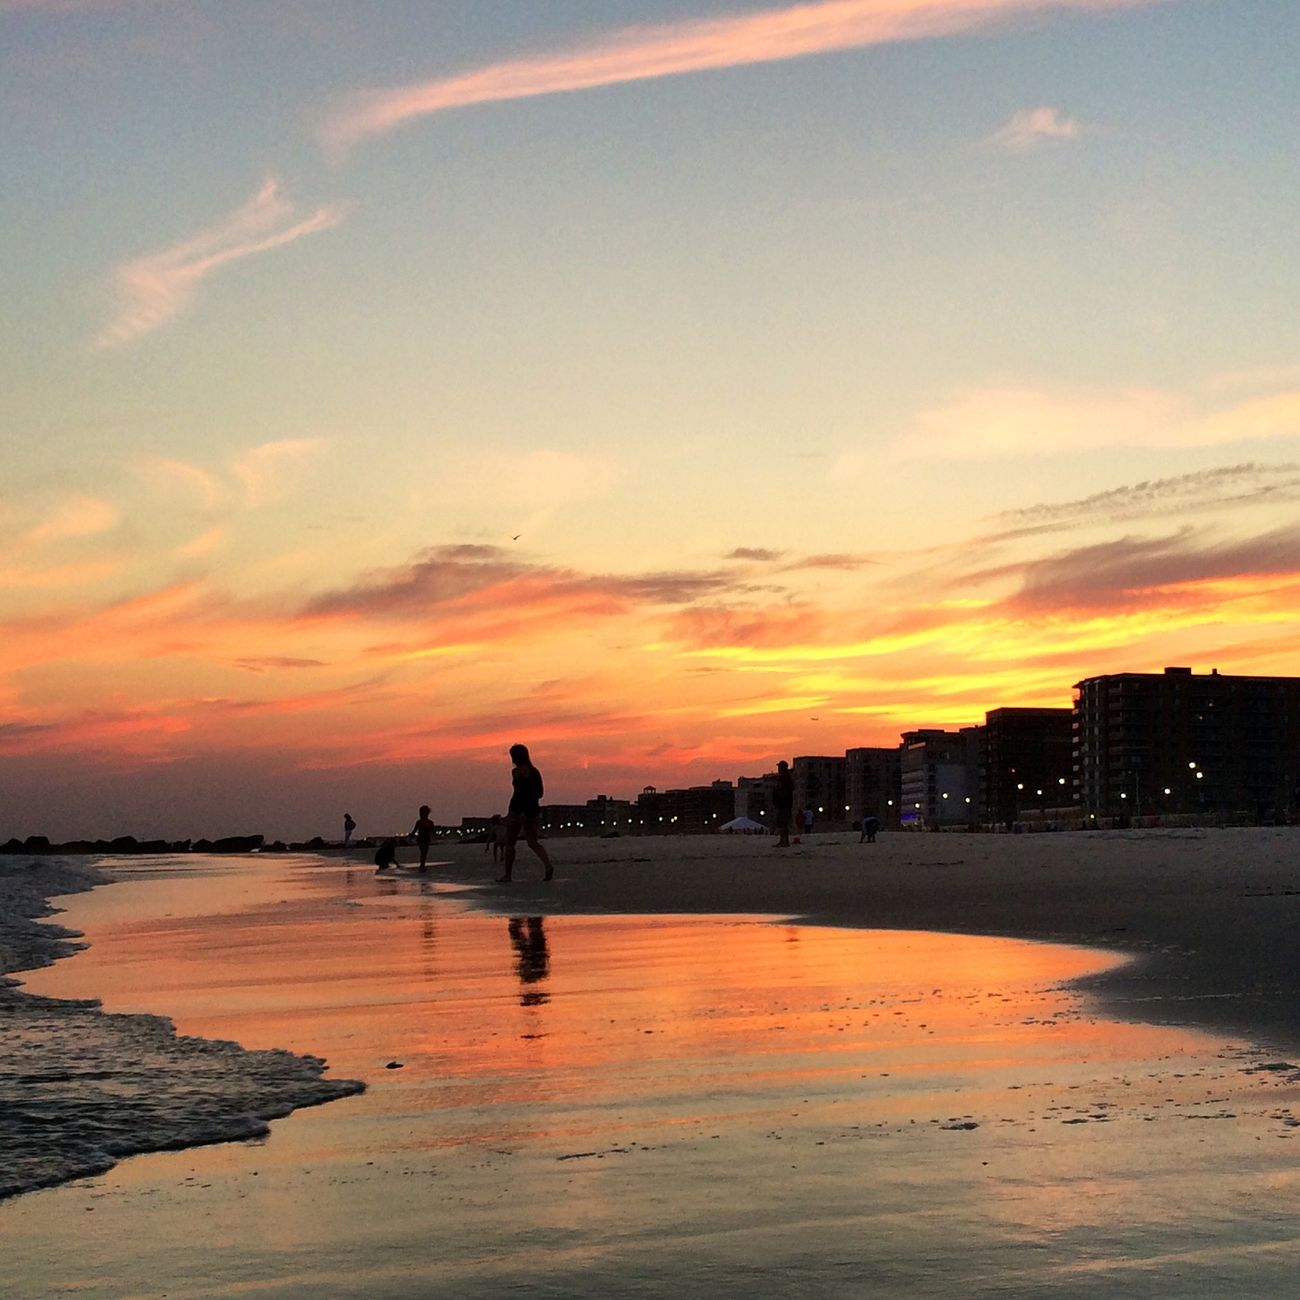 Sunset At Long Beach, NY EyeEm Best Shots Splendid_reflections Visualmagic